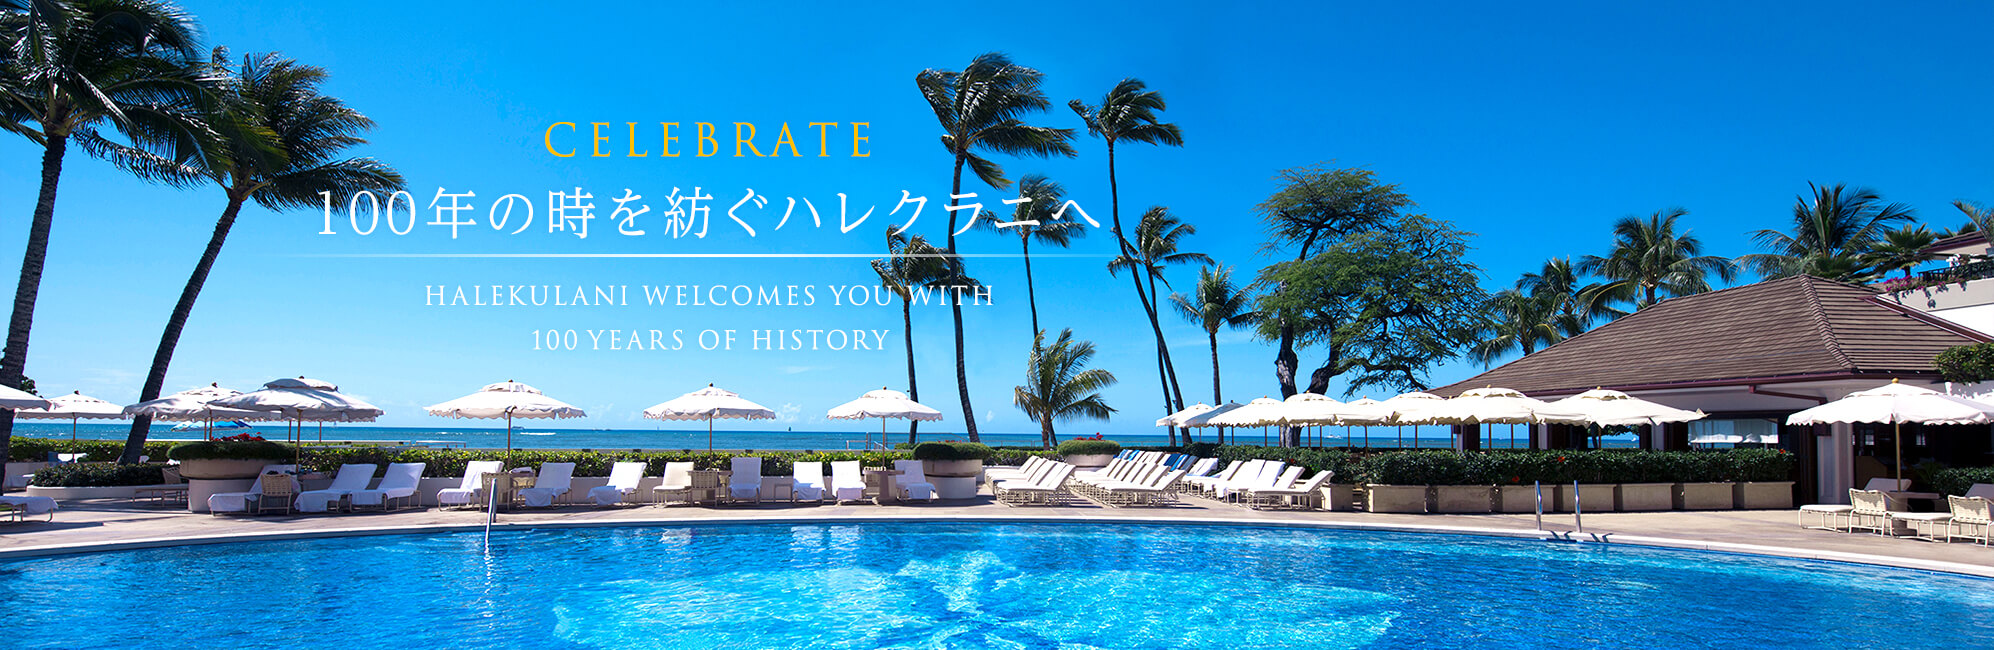 CELEBRATE 100年の時を紡ぐハレクラニへ Halekulani welcomes you with 100 years of history